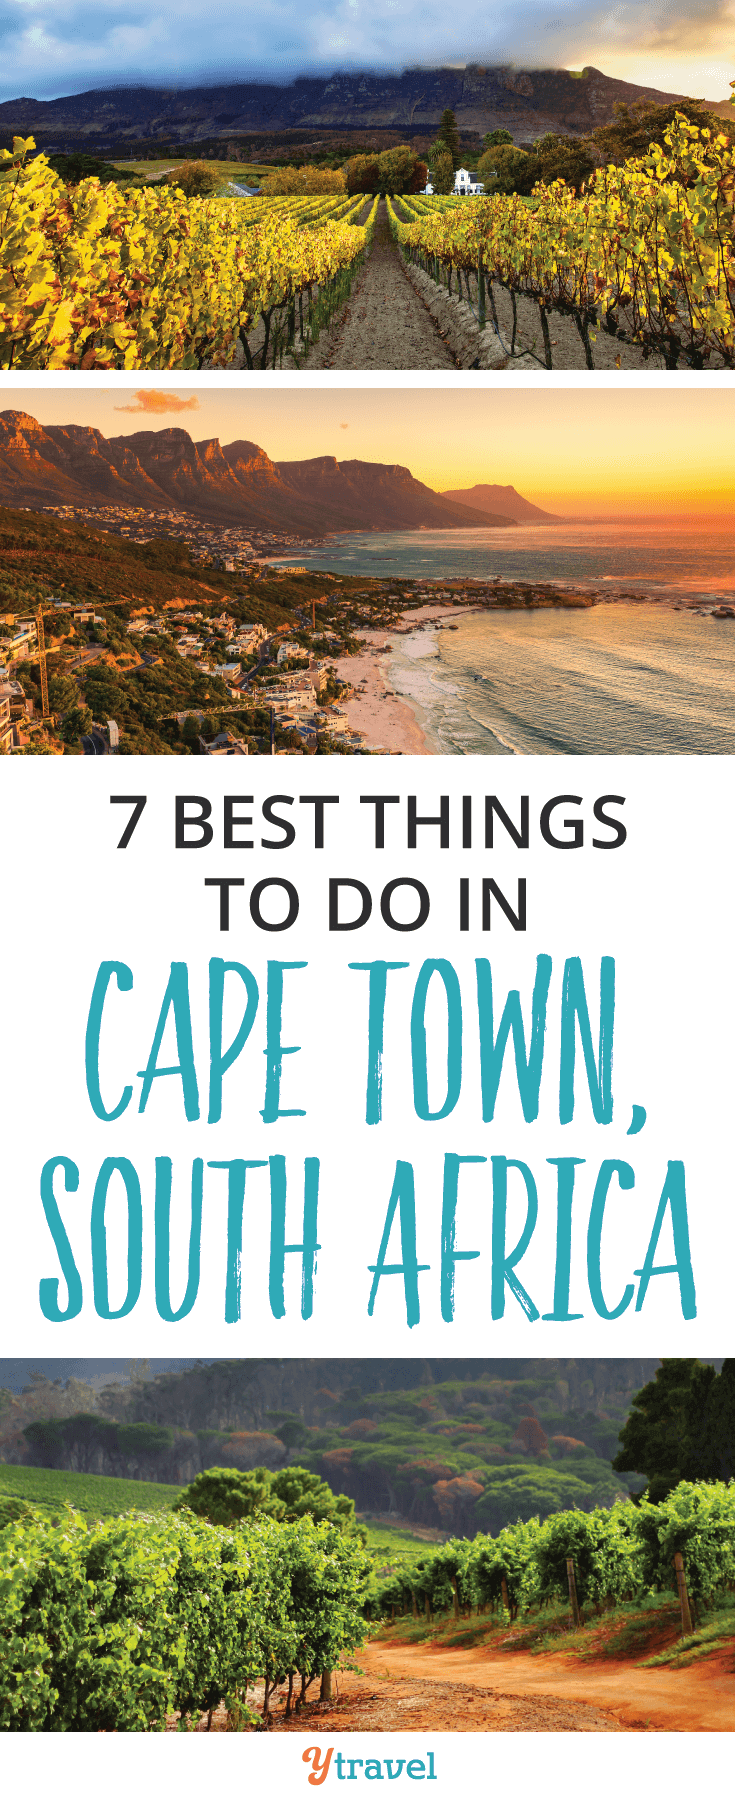 The 7 best things to do in Cape Town, South Africa. Enjoy South African wine, fine dining, hiking, visiting penguins and much more!